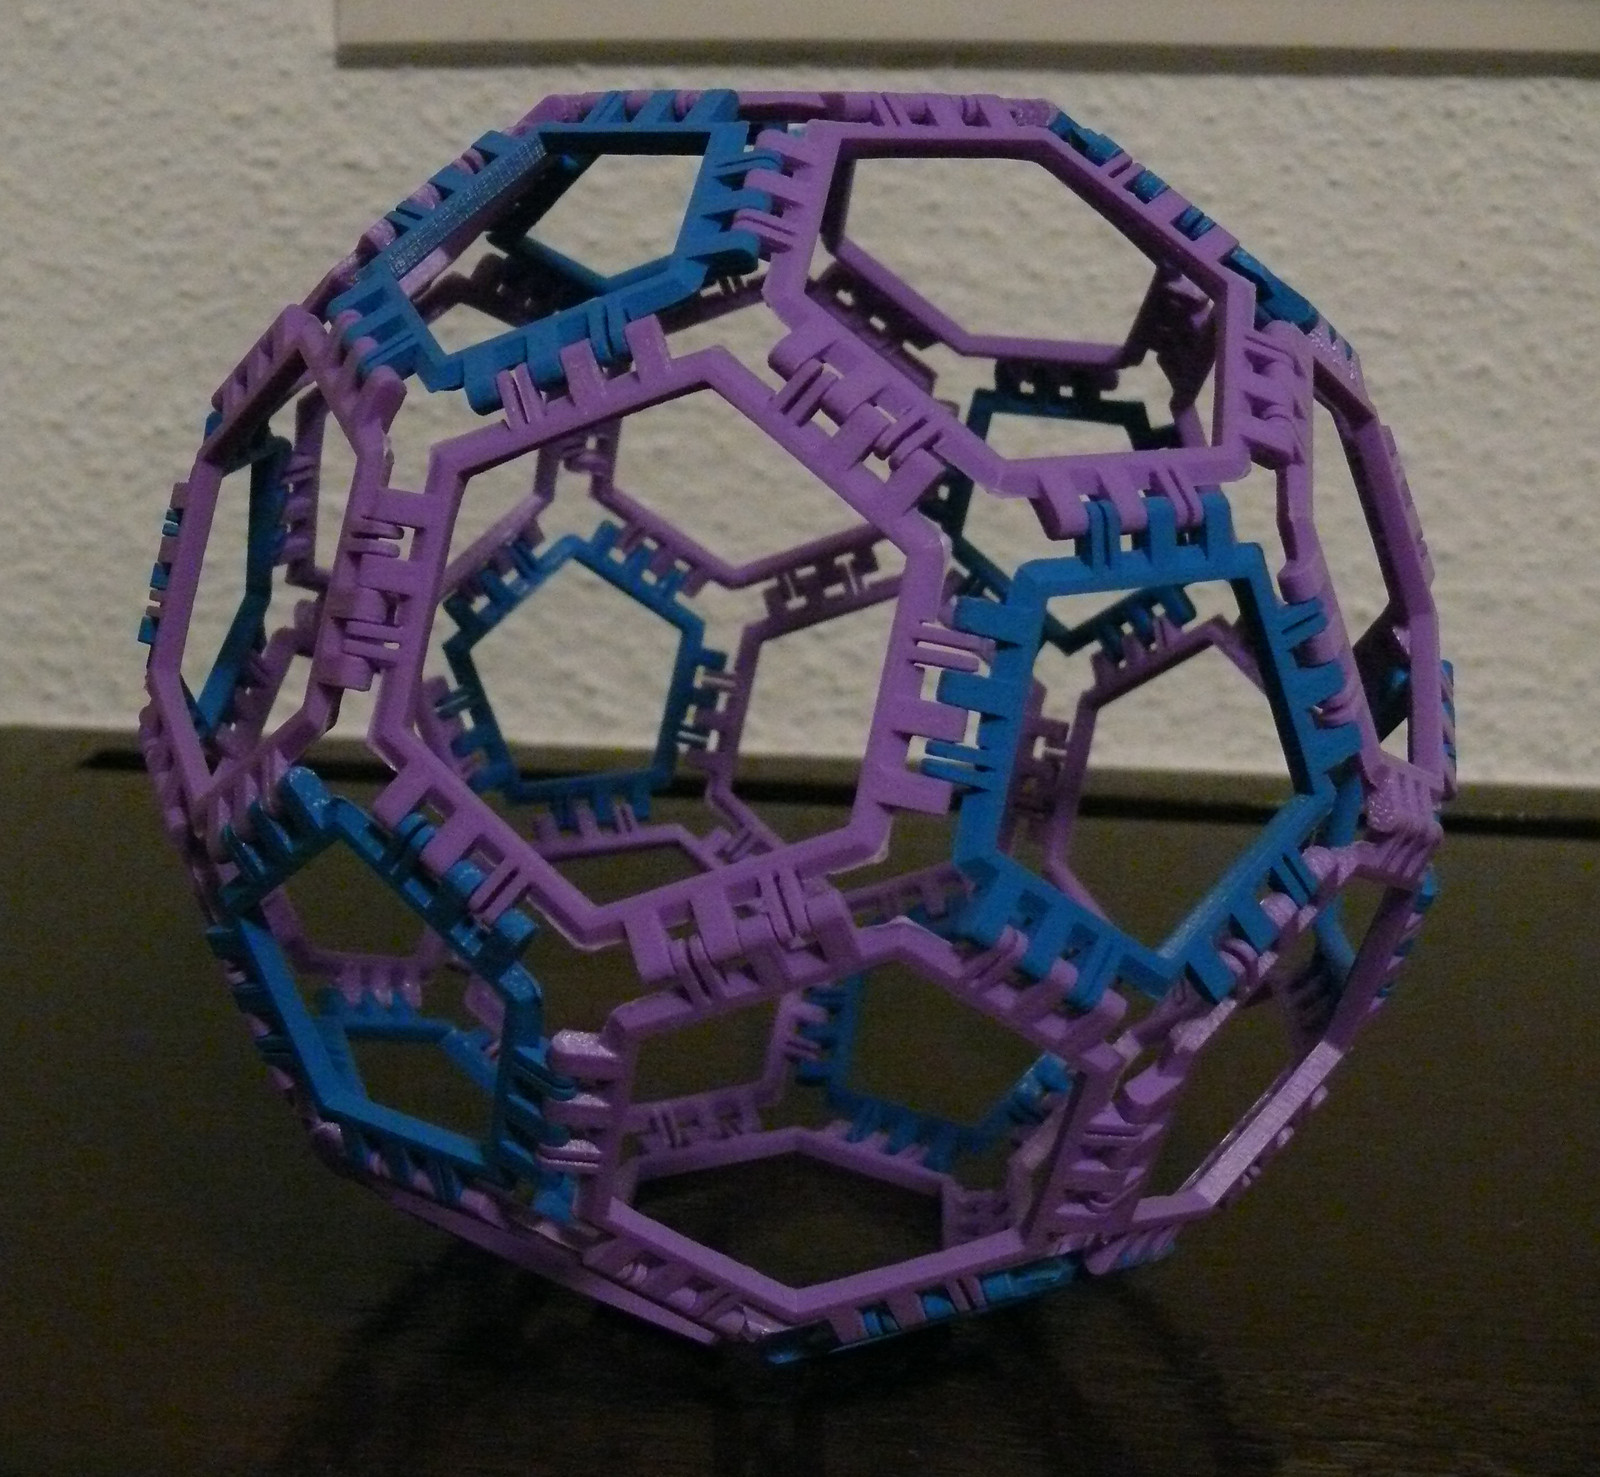 Cover image for article 'Truncated Icosahedron'